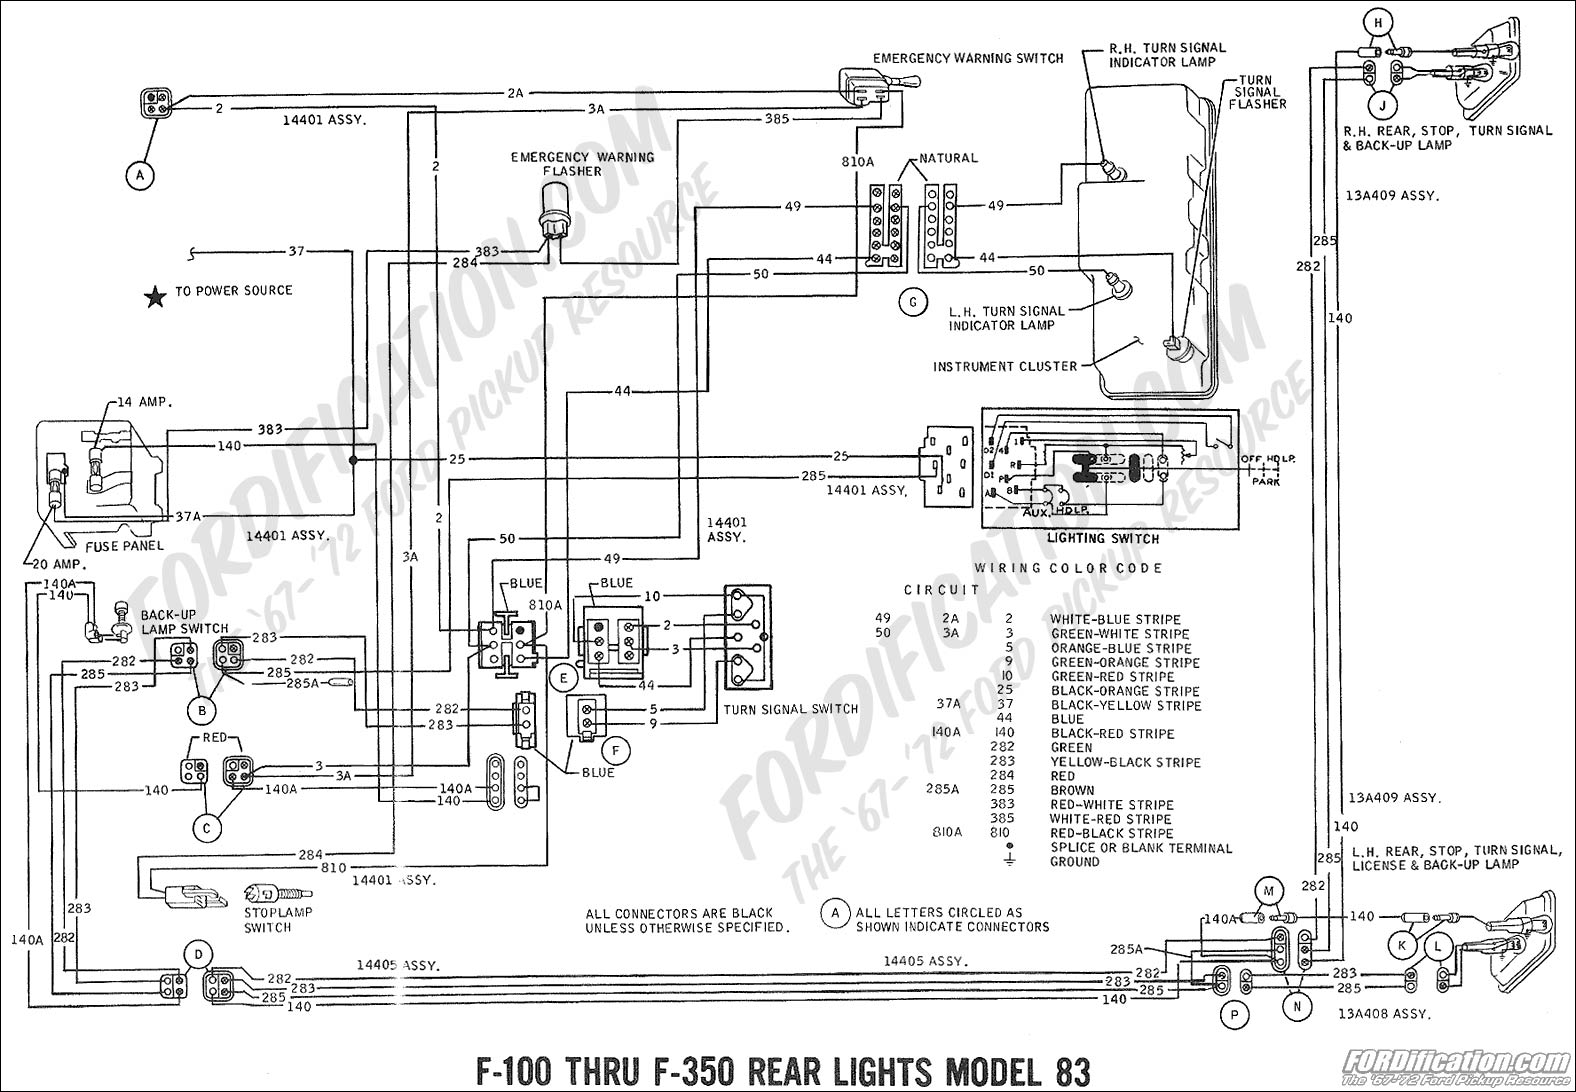 1998 Mustang ke Light Wiring Diagram | Wiring Liry on 99 mustang headlight wiring diagram, 98 mustang headlight wiring diagram, 91 mustang gauge diagram, 91 mustang fuse diagram, 89 mustang headlight wiring diagram, 01 mustang headlight wiring diagram, 95 mustang headlight wiring diagram, 92 mustang headlight wiring diagram, 88 mustang headlight wiring diagram,